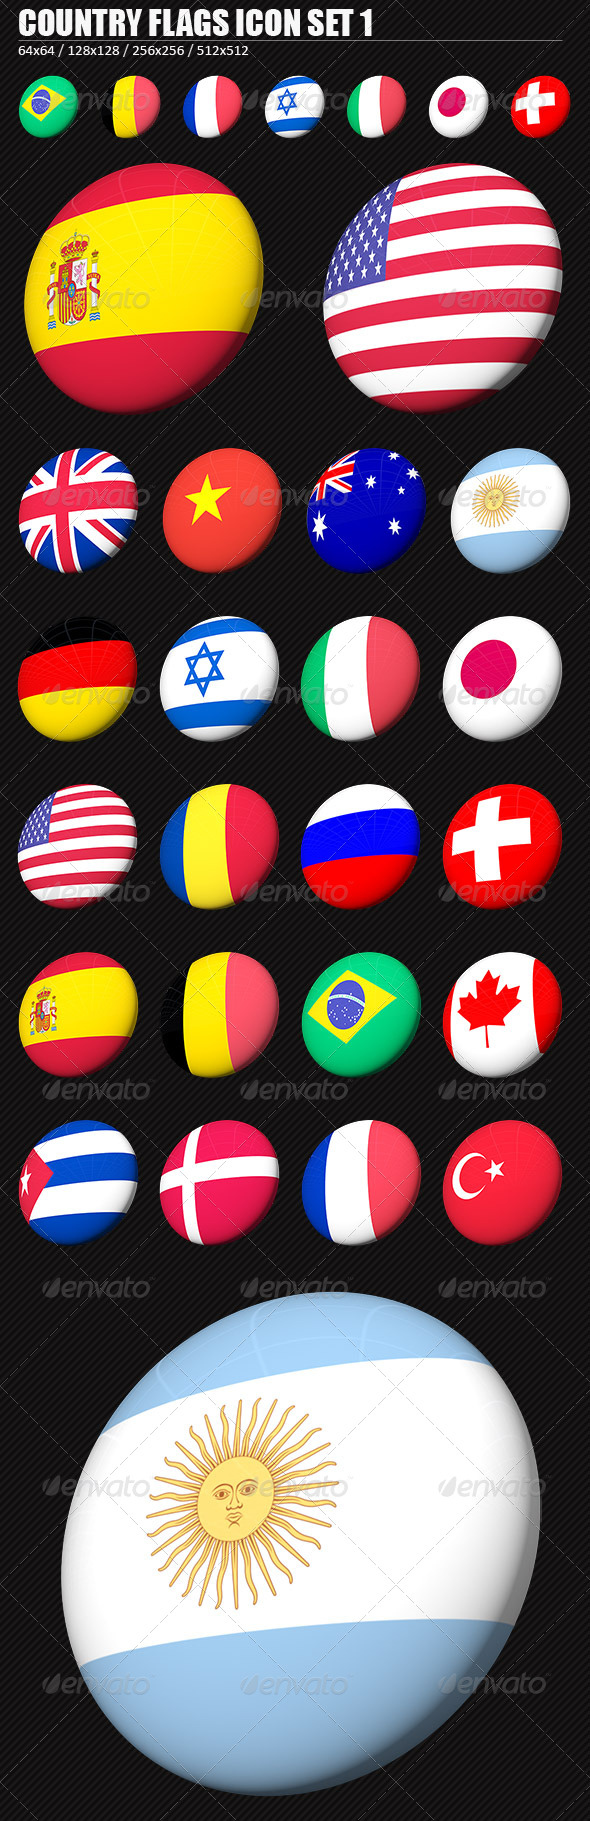 GraphicRiver Country Flags PNG Icon Set 1 137587